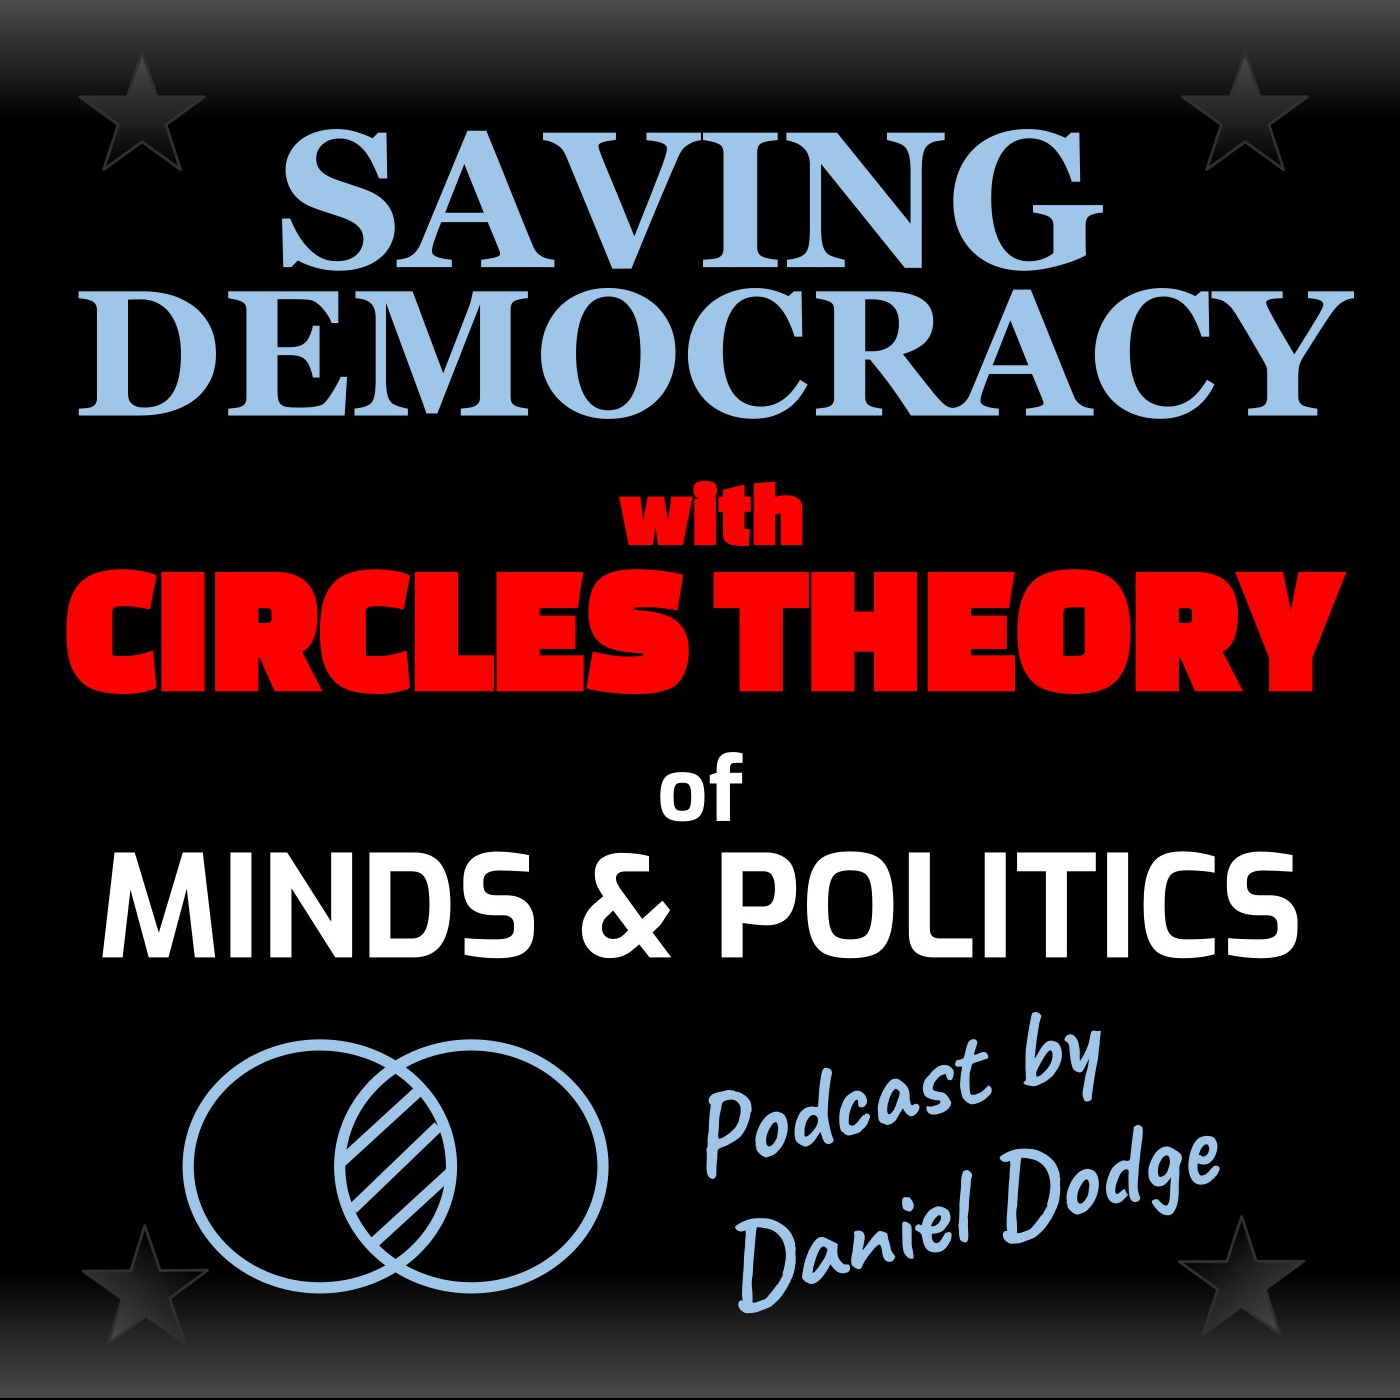 Podcast Episodes on Political Psychology by Daniel Dodge – Saving